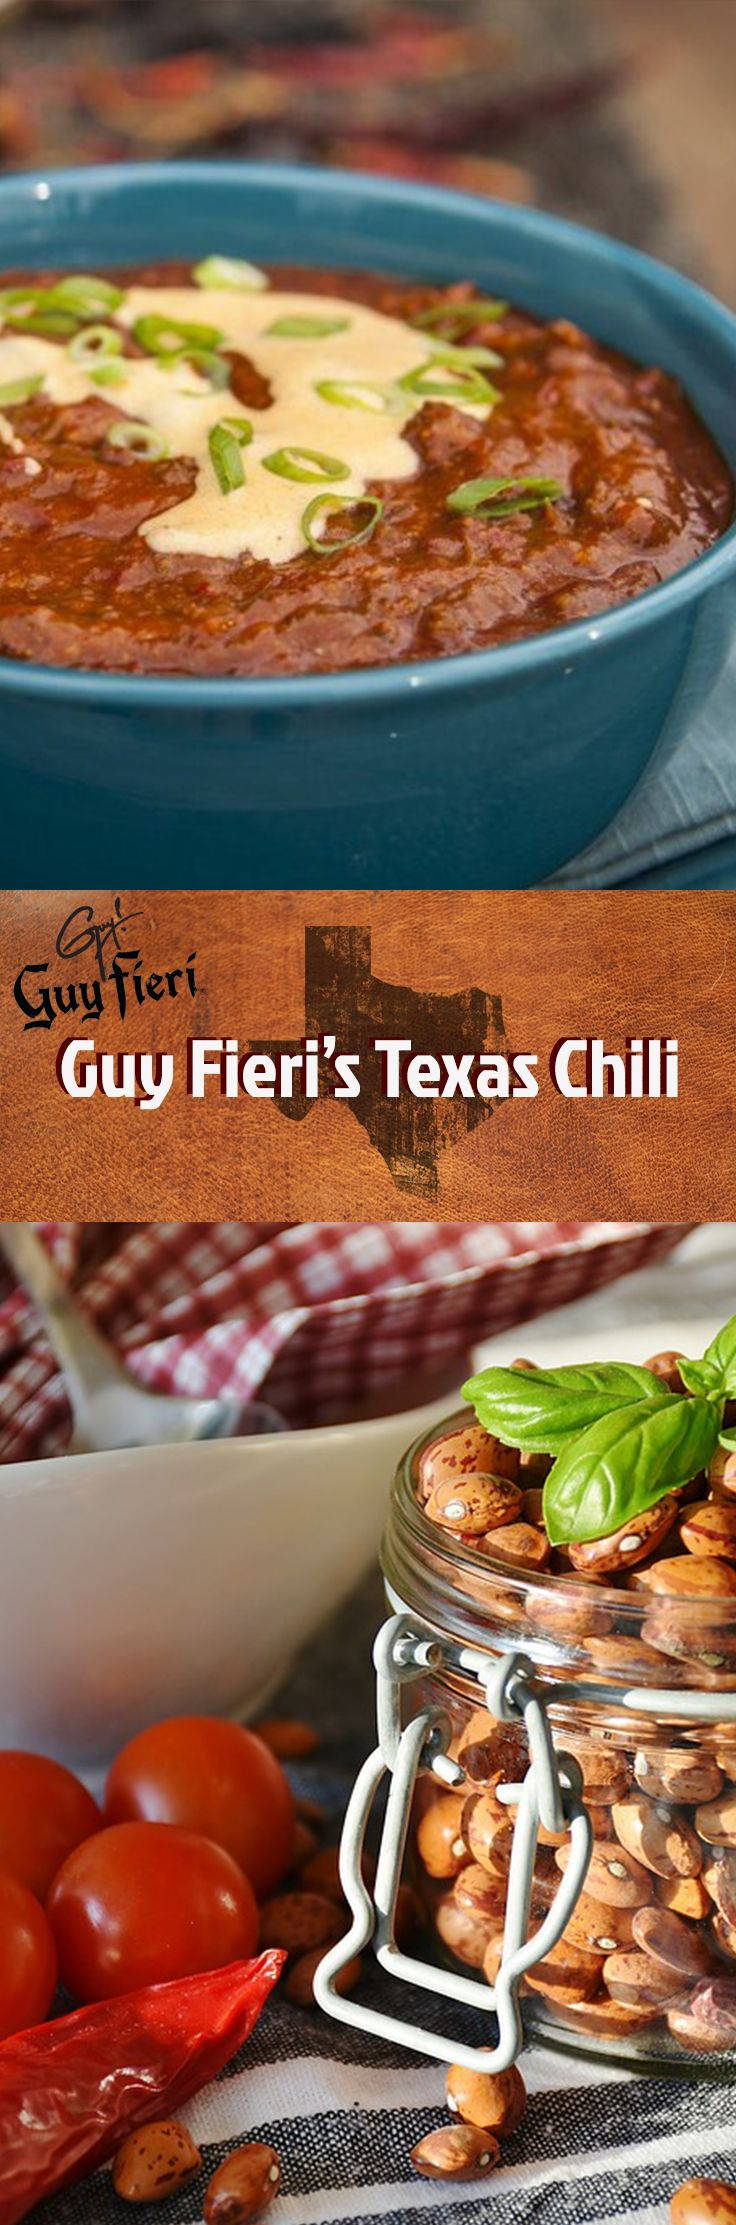 Make this Texas Chili by the infamous Guy Fieri.